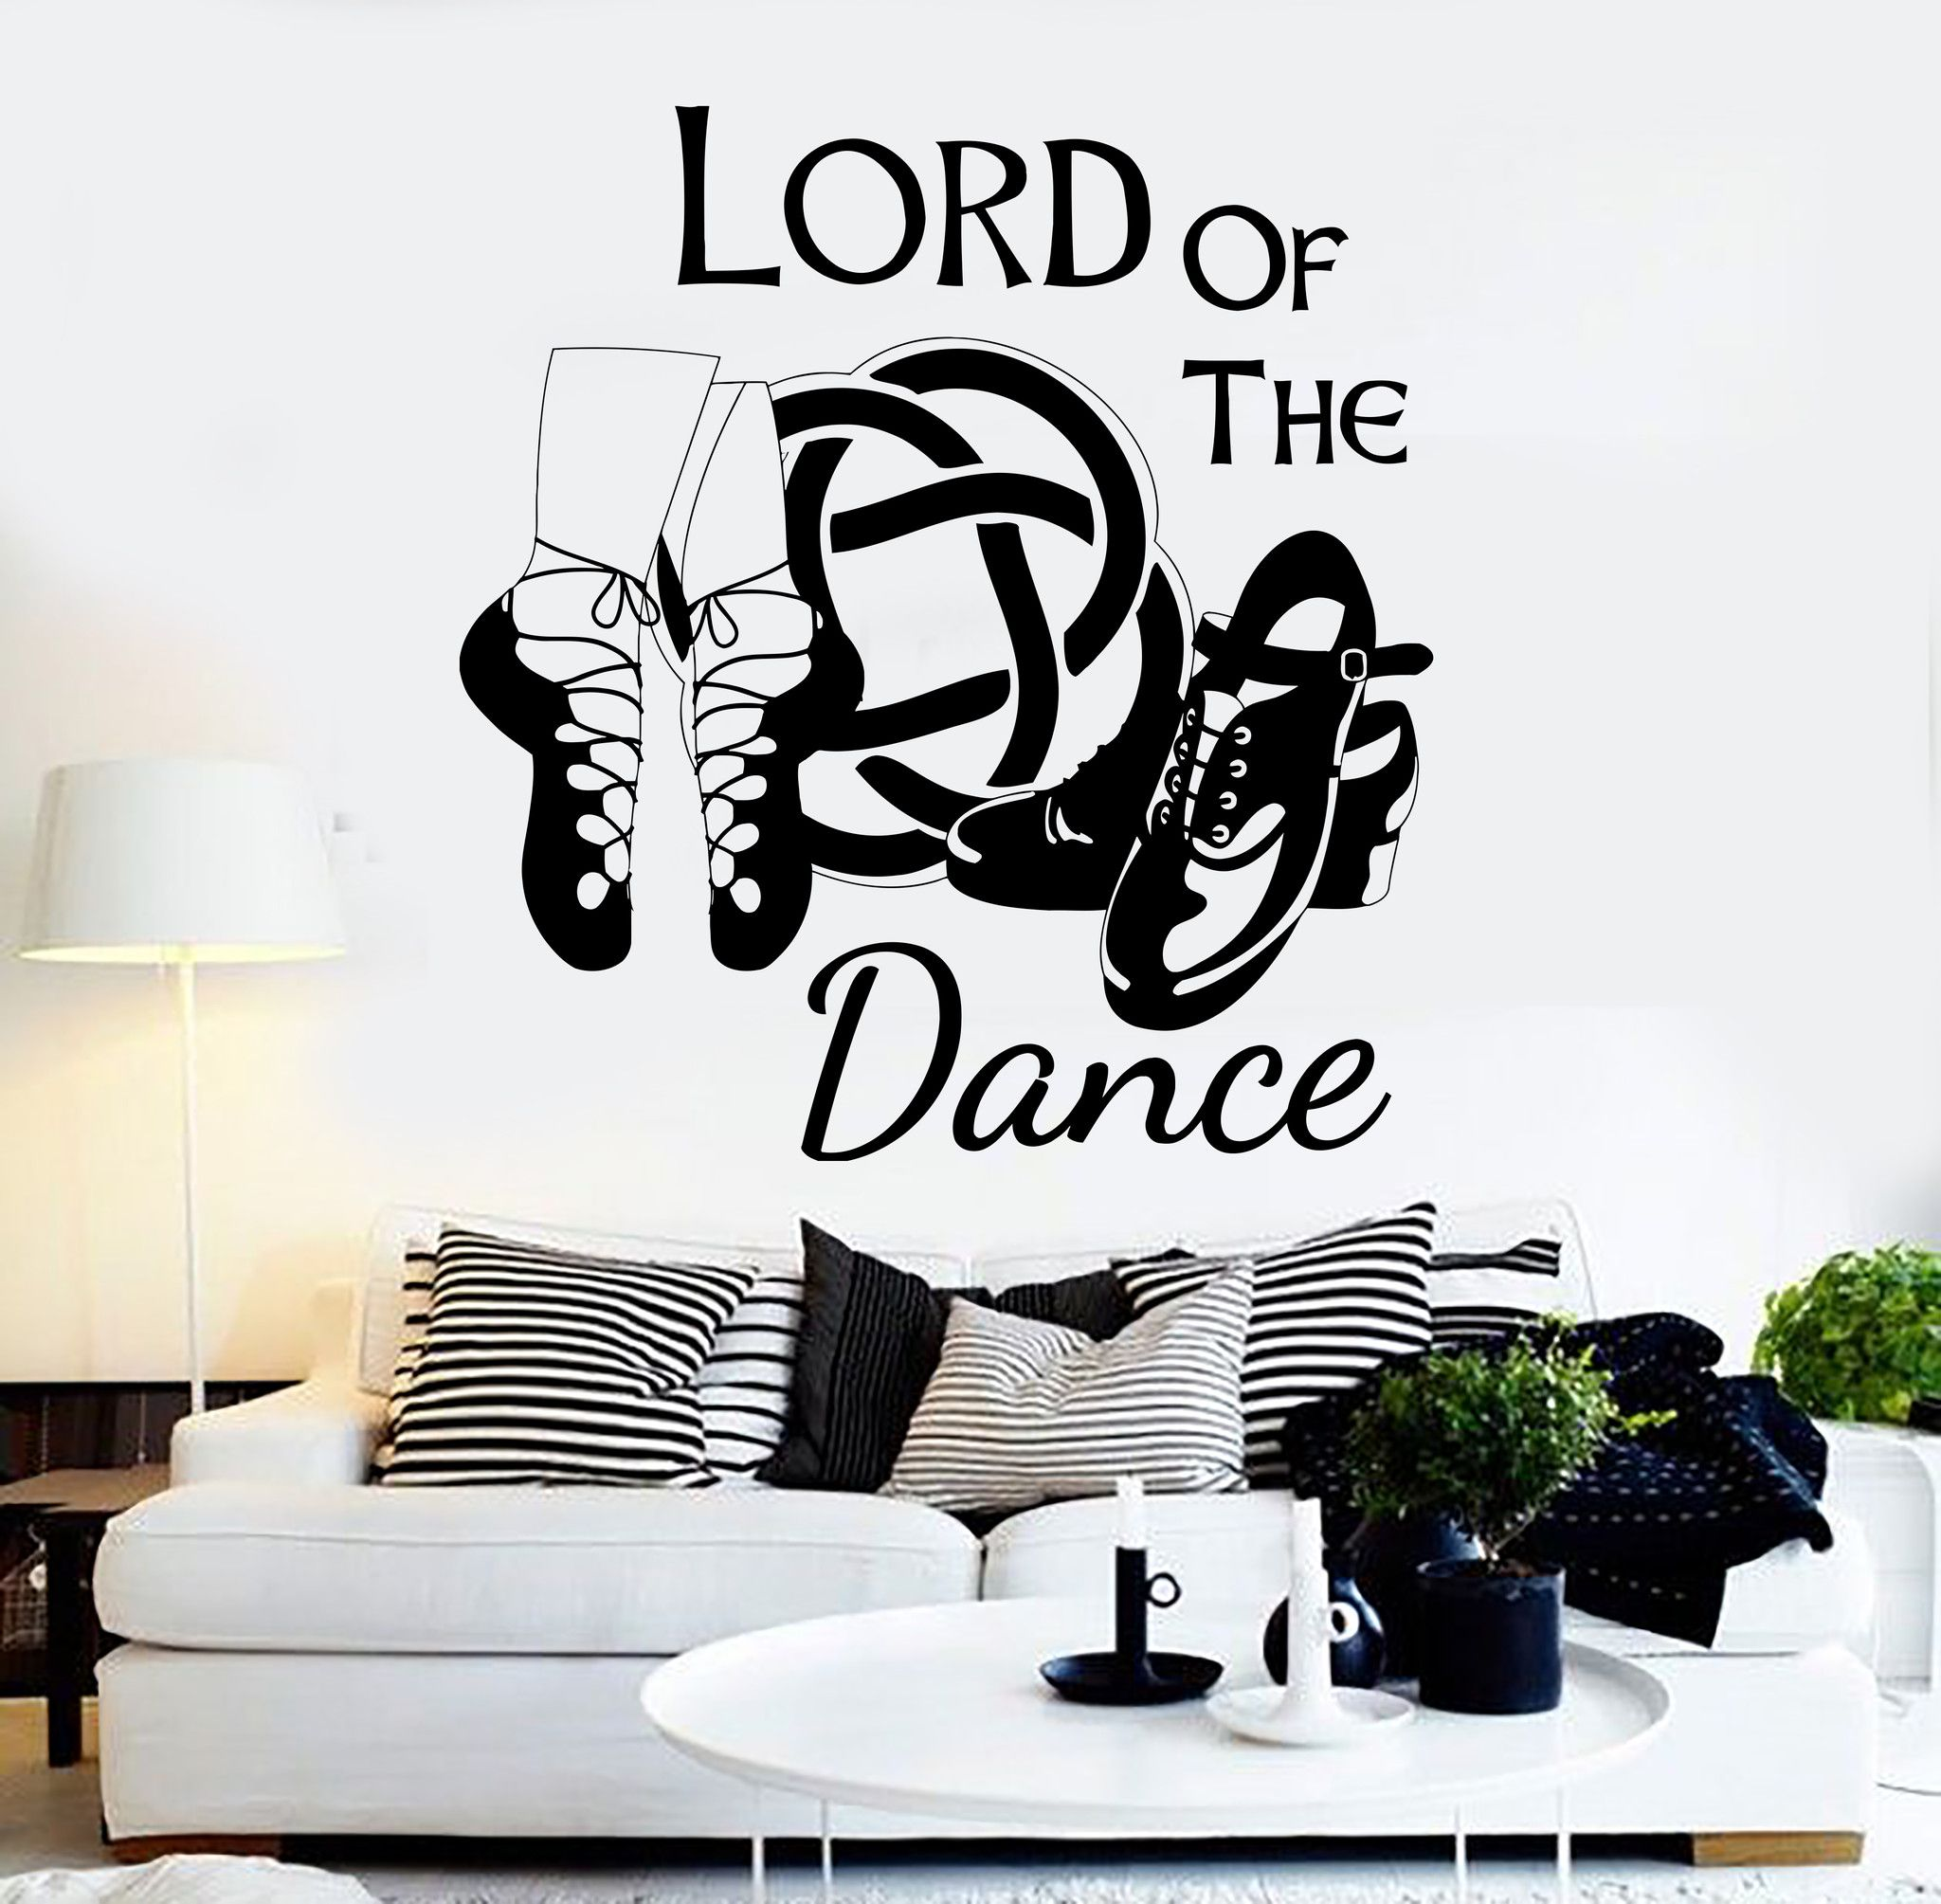 Vinyl Wall Decal Irish Dance Ireland Quote Celtic Stepdance Ghillies Stickers Unique Gift Ig3645 Vinyl Wall Decals Irish Dance Wall Decals